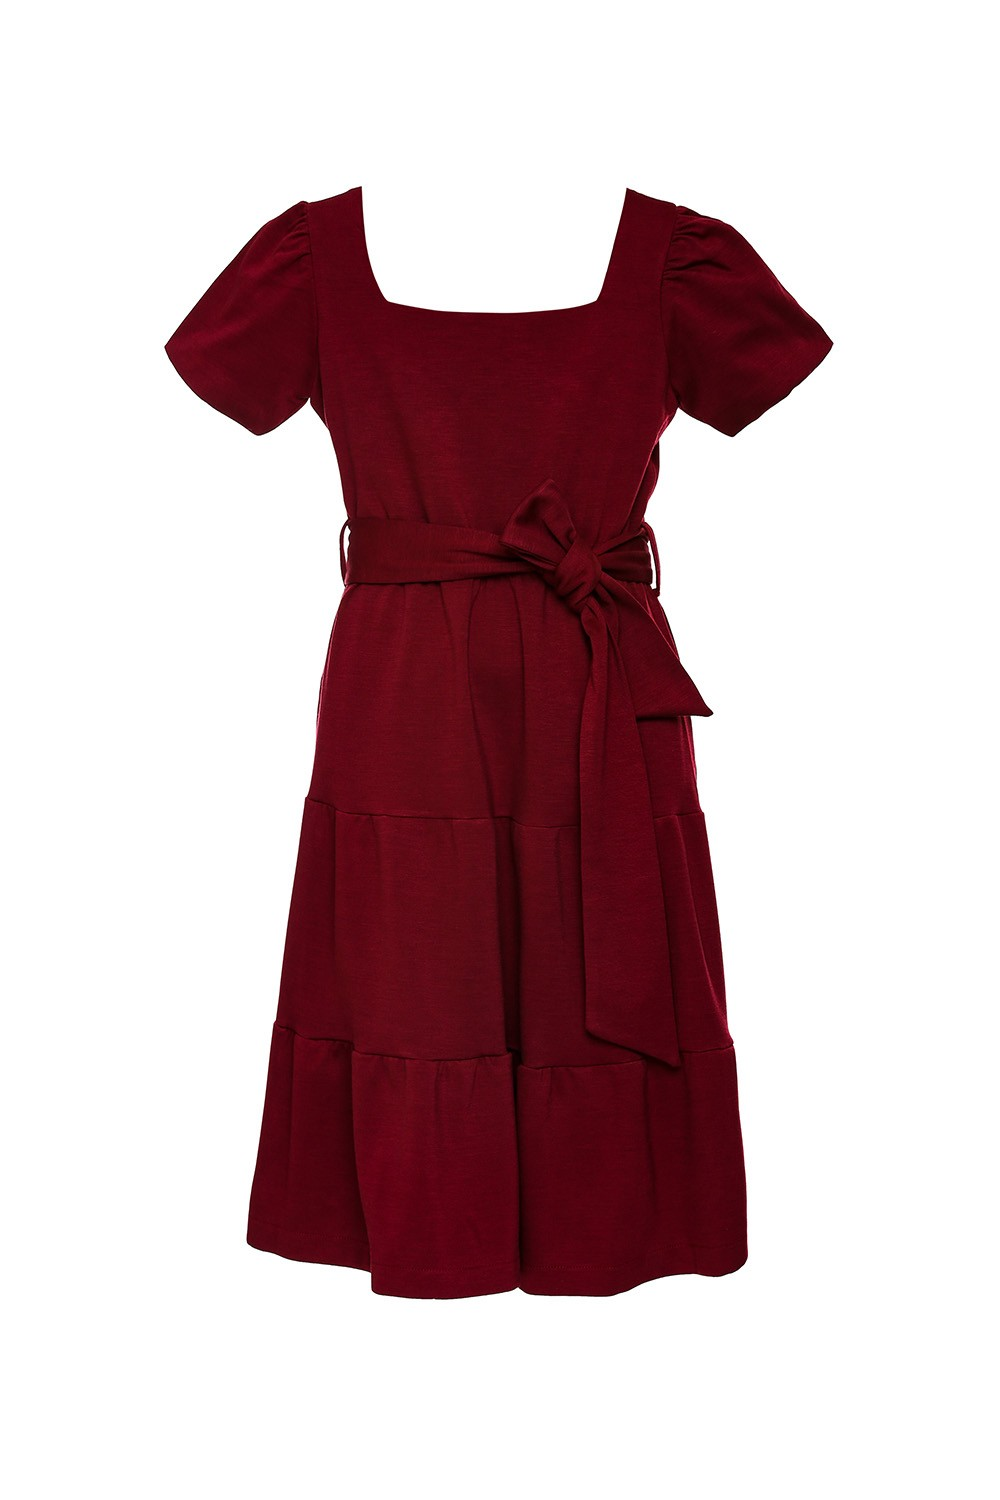 VESTIDO RED WOOD KIDS I21